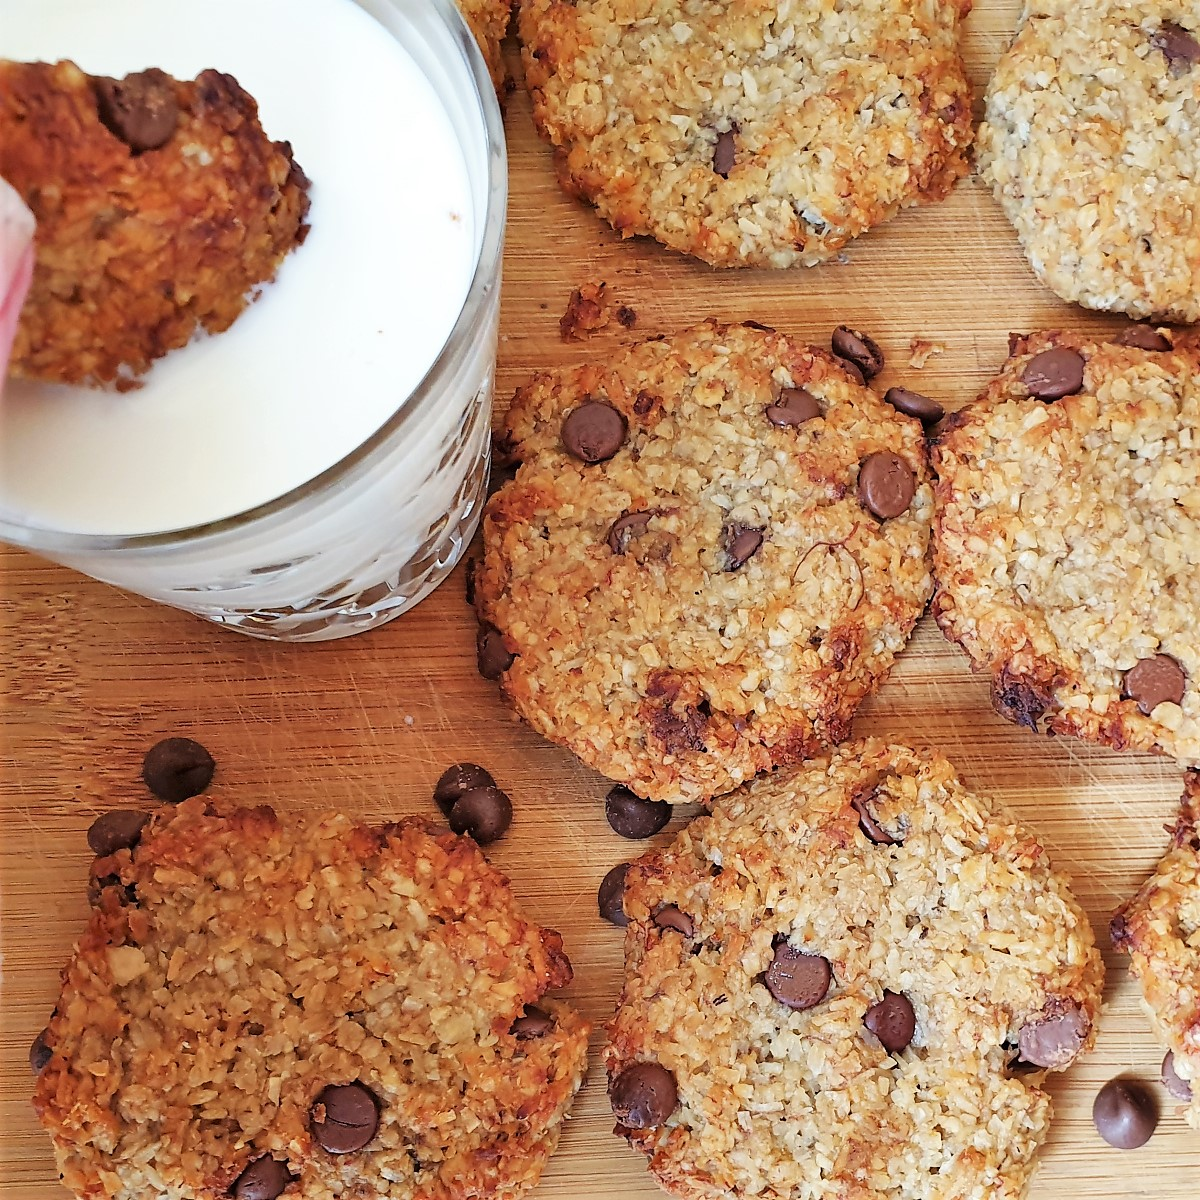 Overhead shot of banana oat cakes with a glass of milk.